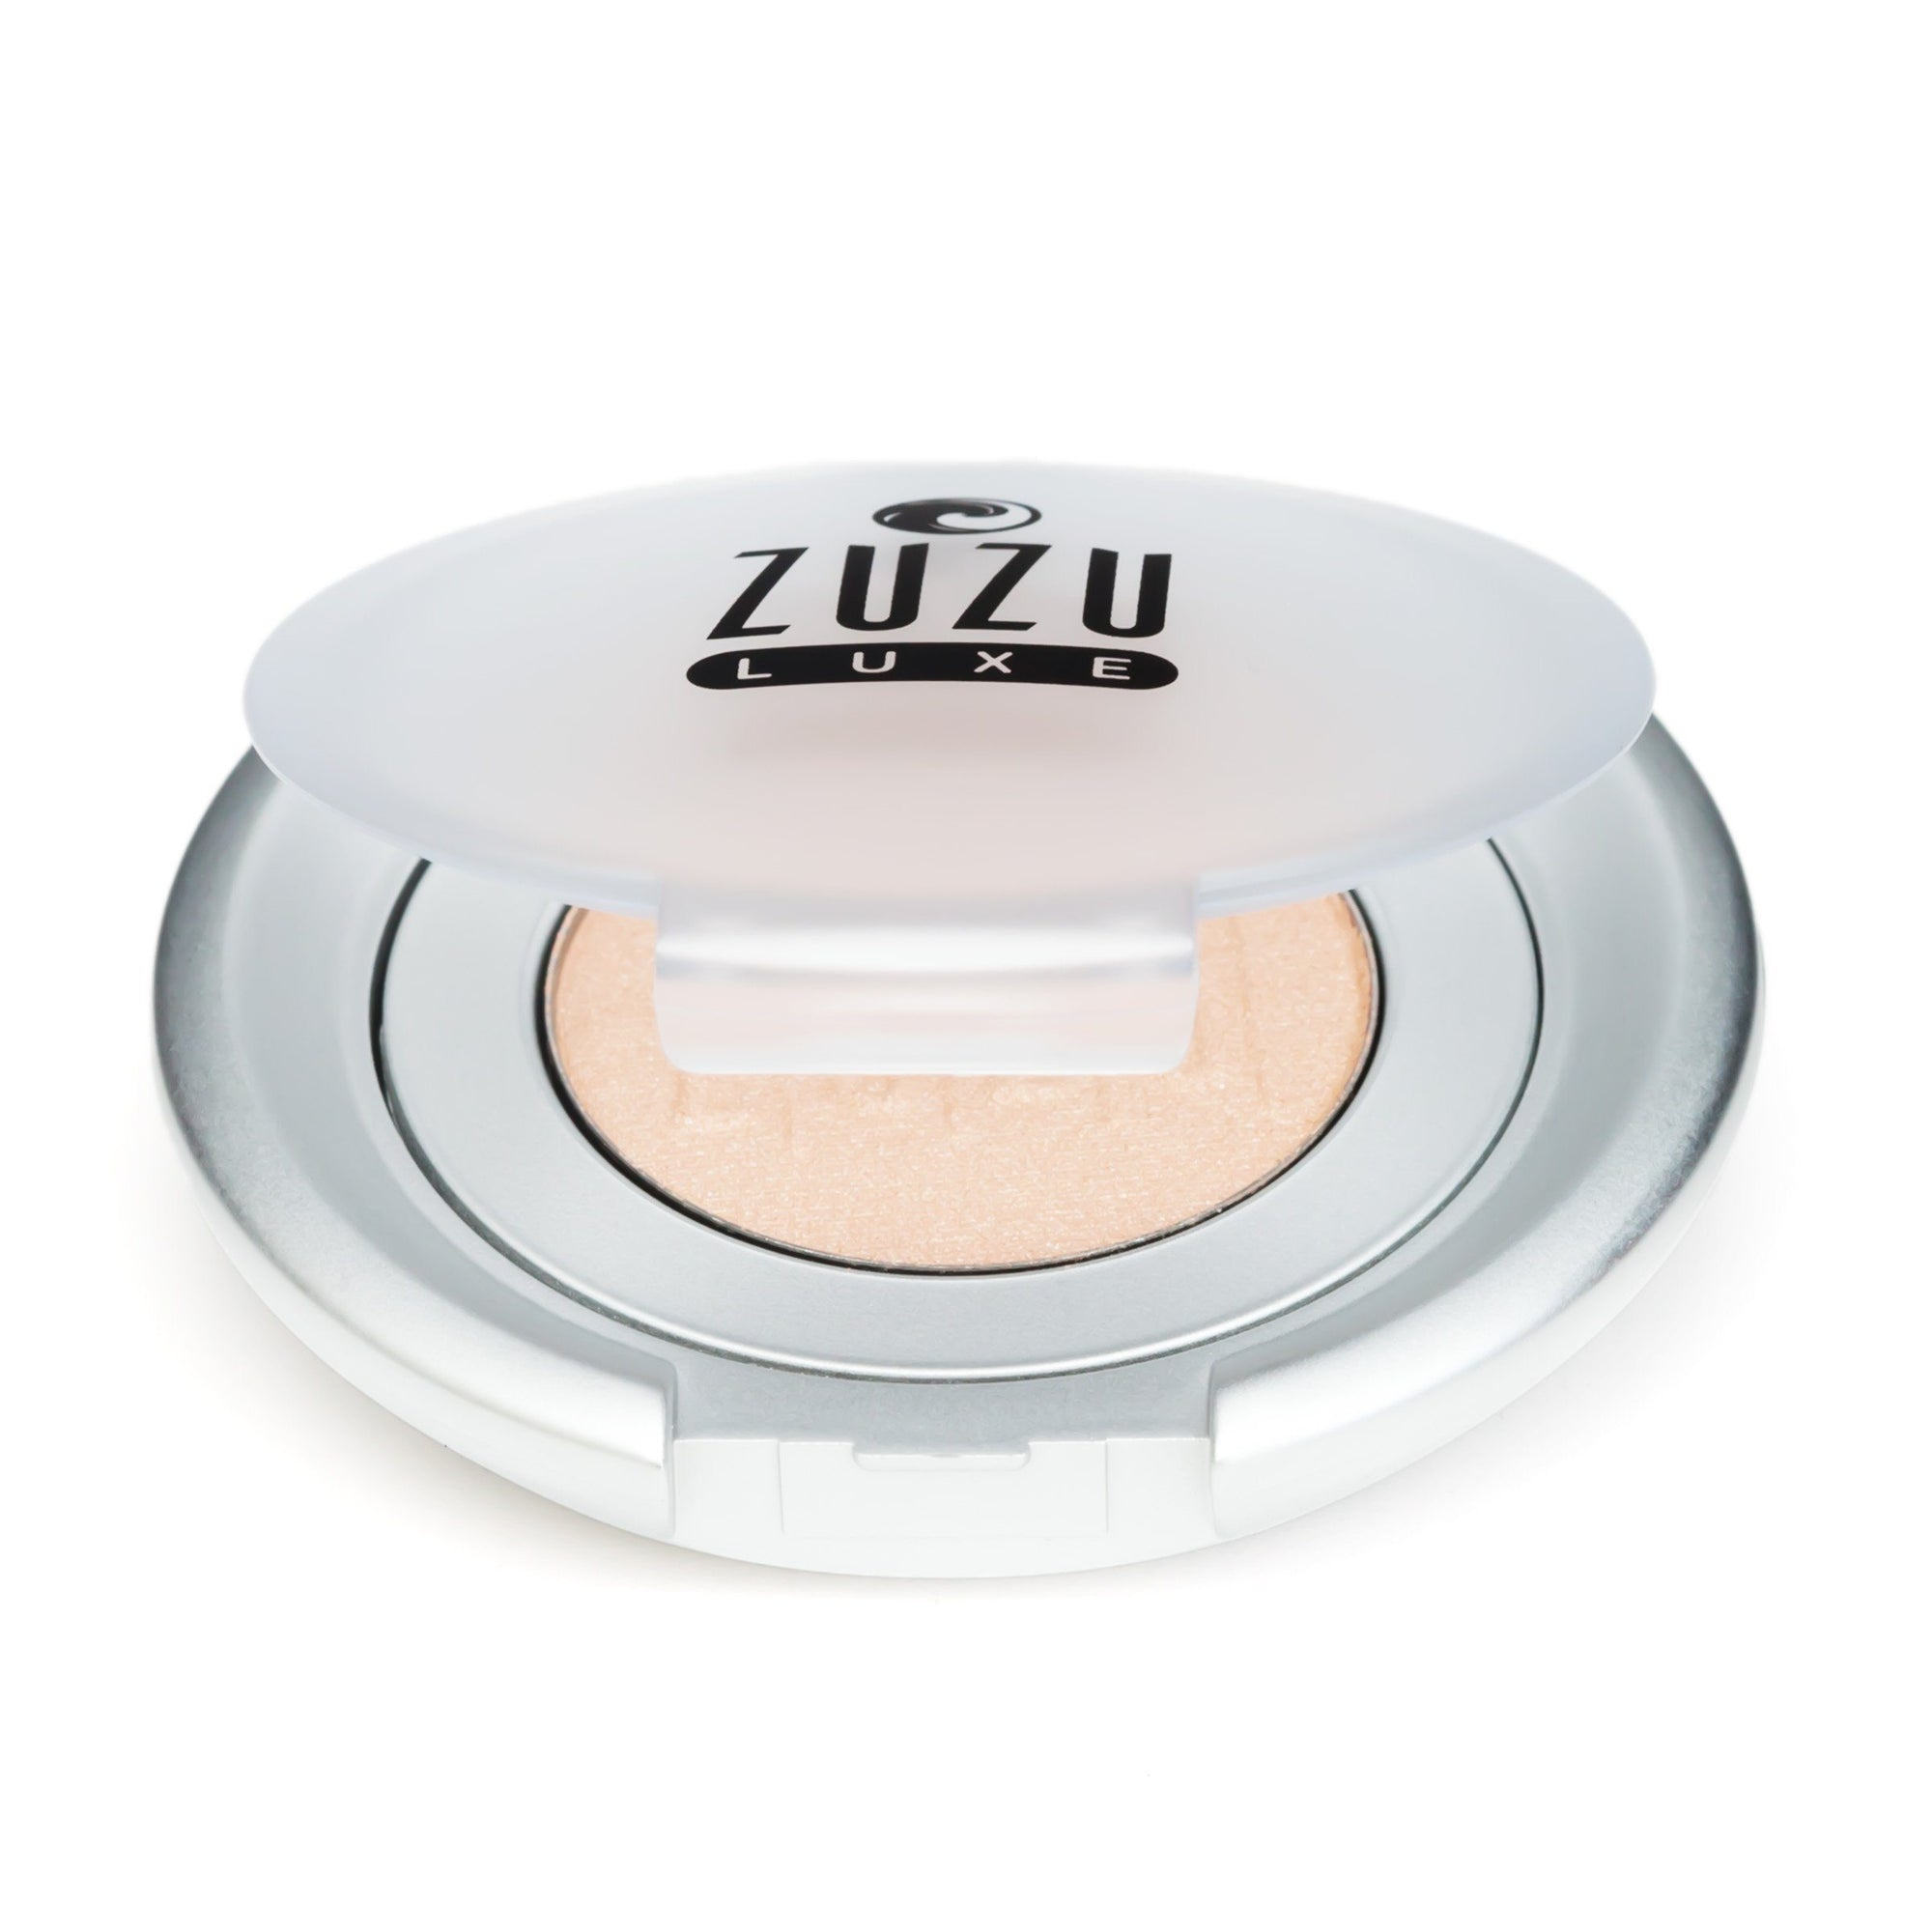 Beauty & Skin Care - Zuzu Luxe - Vegan Eyeshadow, Casino